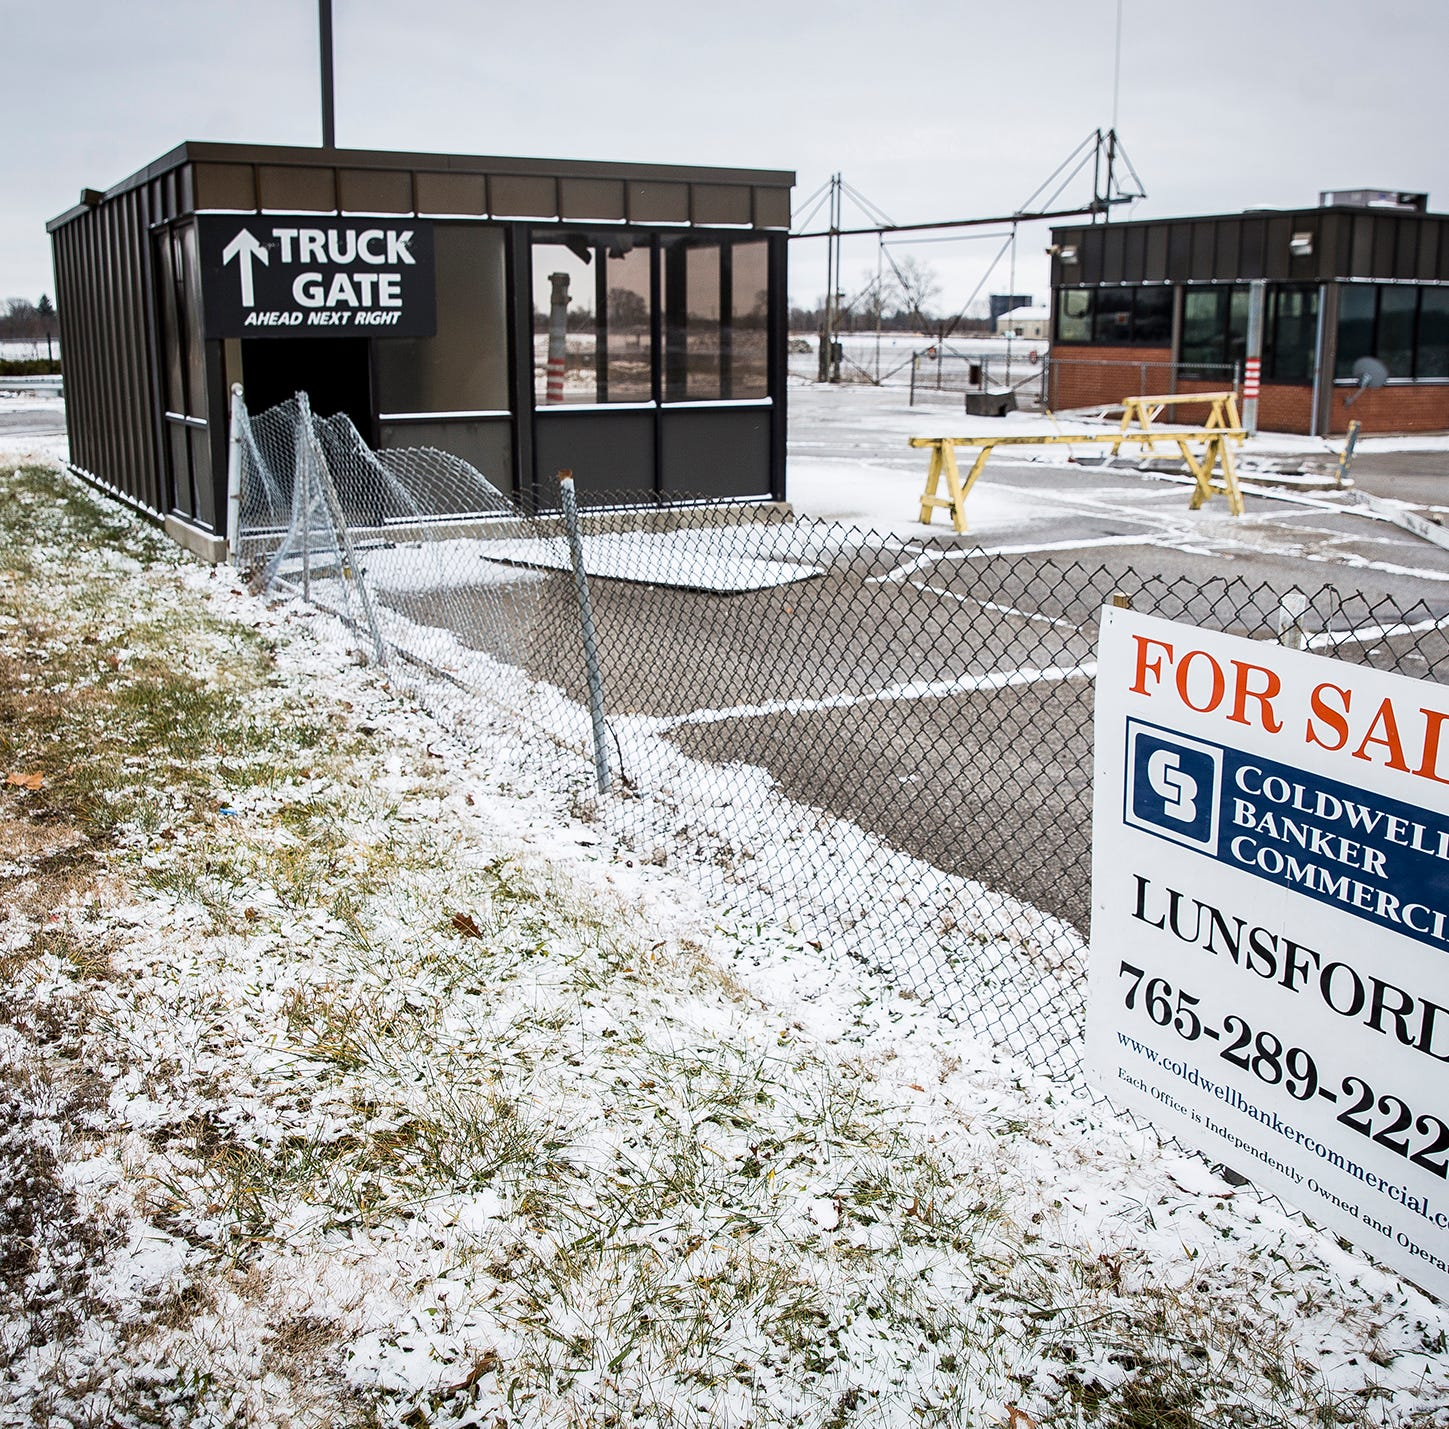 Auto industry town comeback: Why Kokomo and not Muncie?